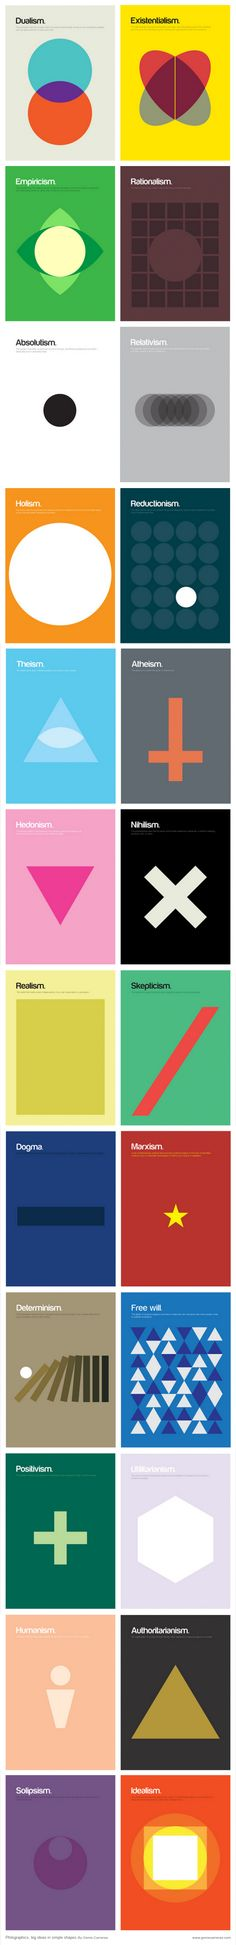 Philographics – big ideas in simple shapes. By Genis Carreras.